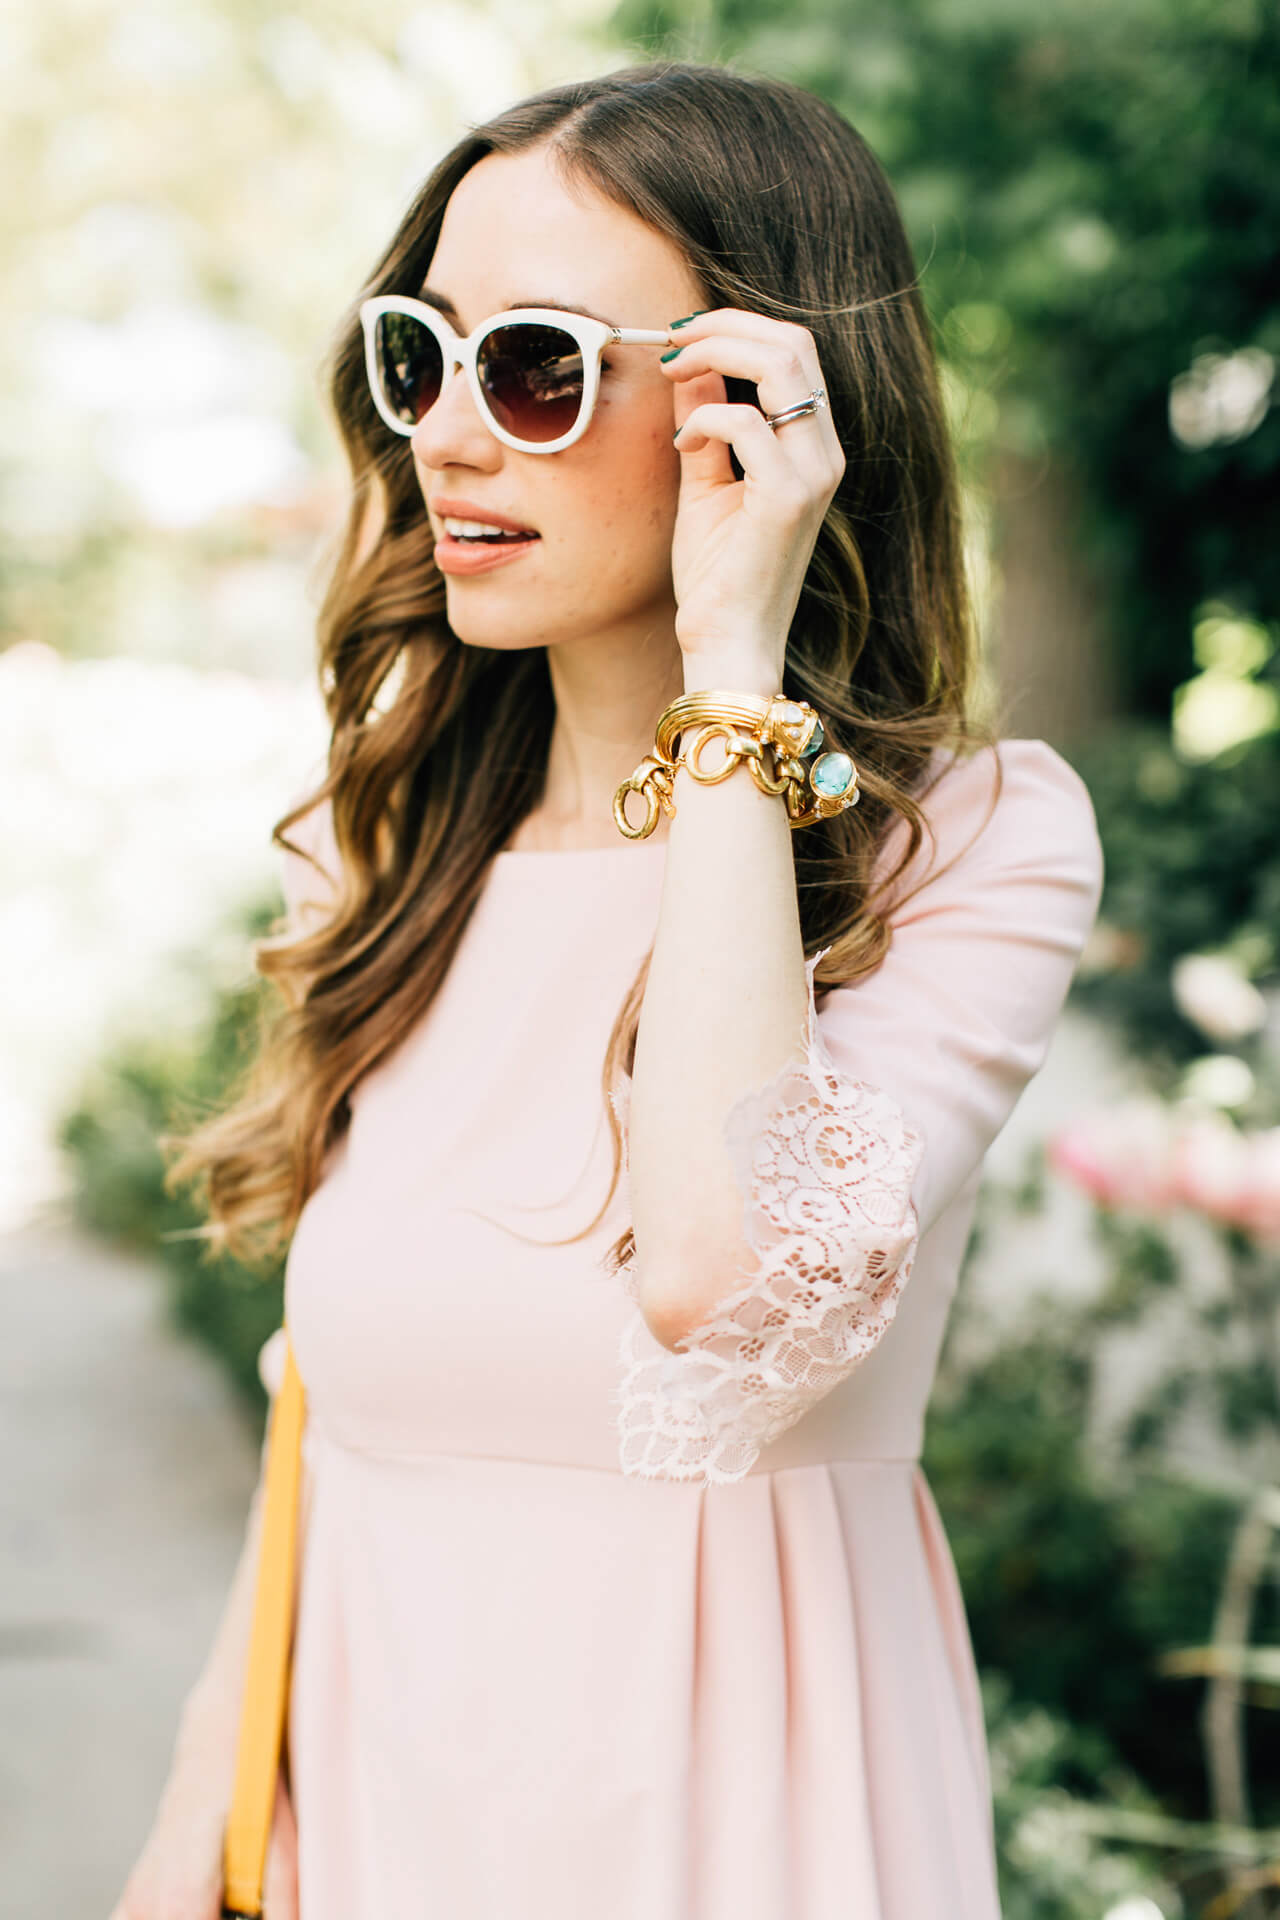 los angeles feminine style blogger M Loves M - @marmar